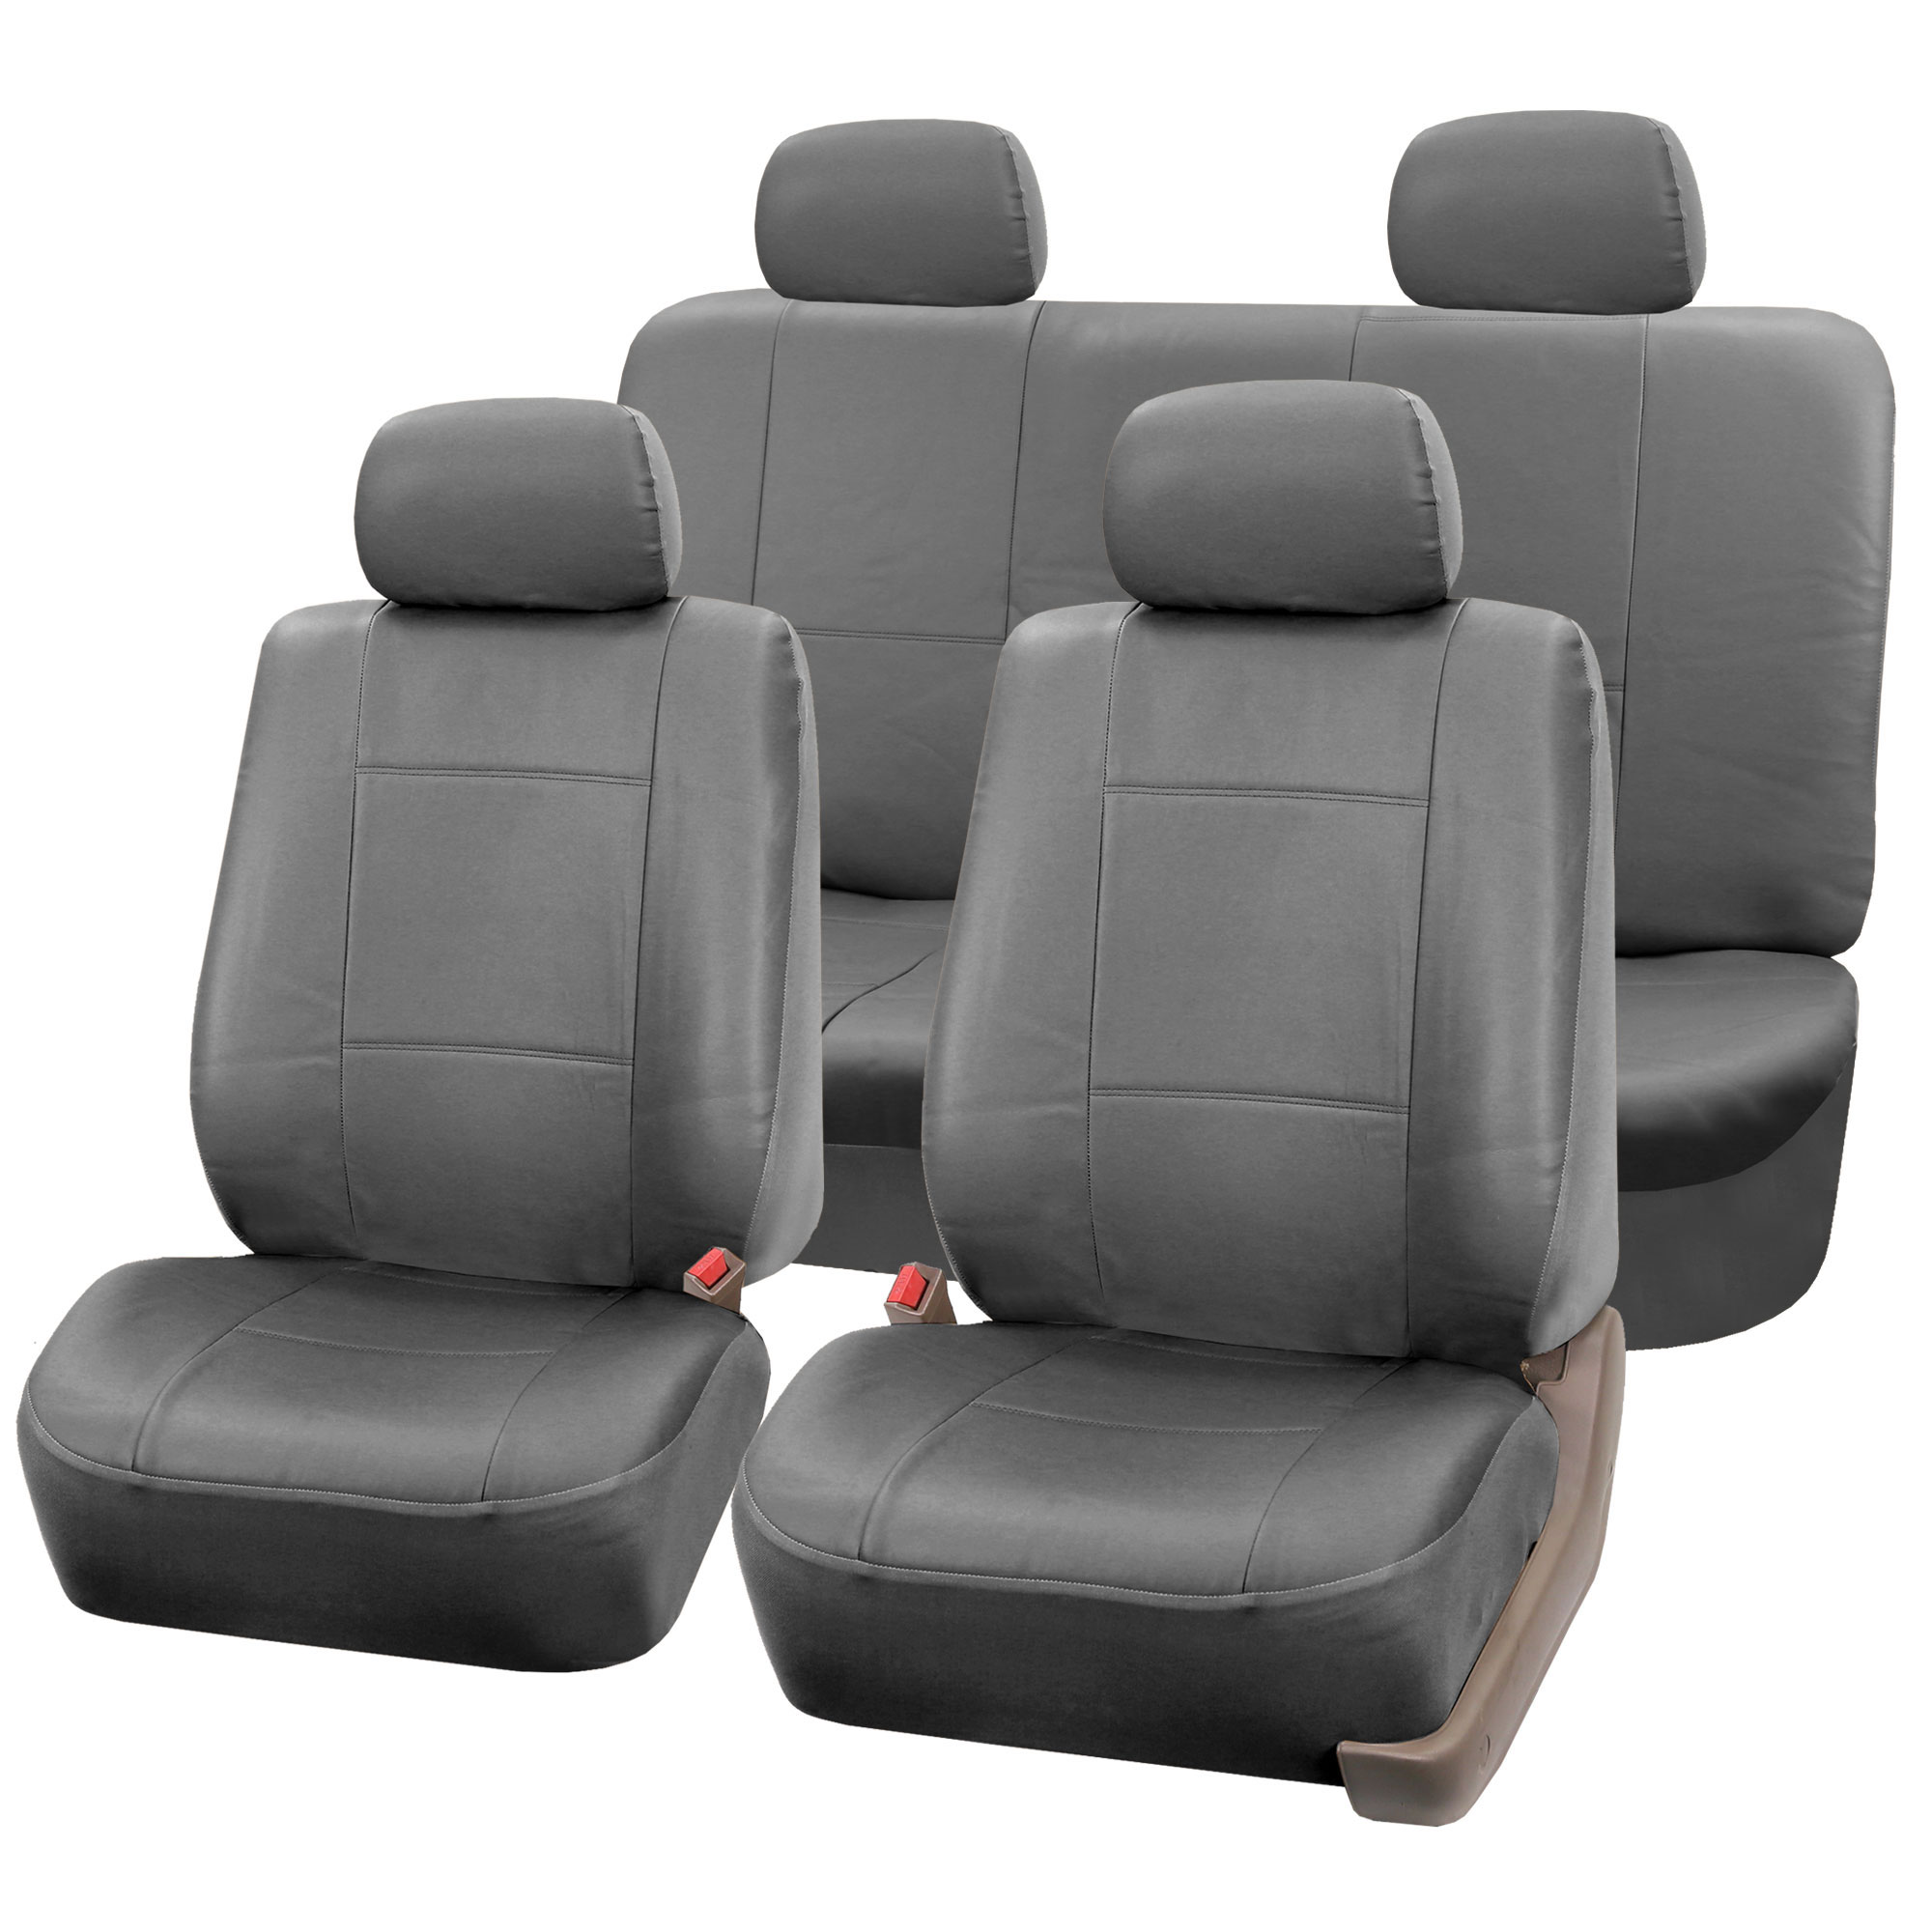 faux leather full sets car seat cover for suv van auto ebay. Black Bedroom Furniture Sets. Home Design Ideas